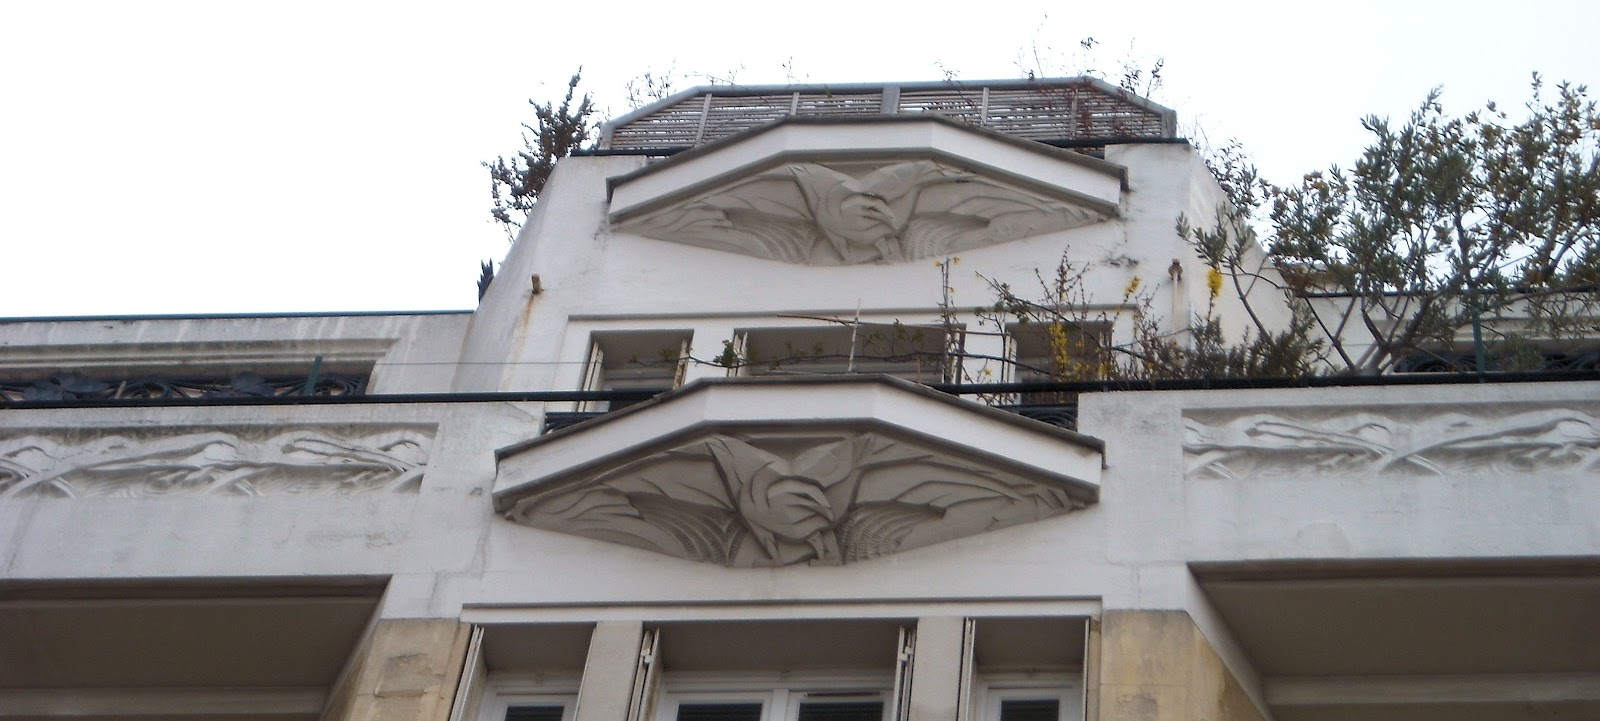 Decoration Facade De Maison Deco Facade Maison Latest Beautiful Maison Art Dco With Deco